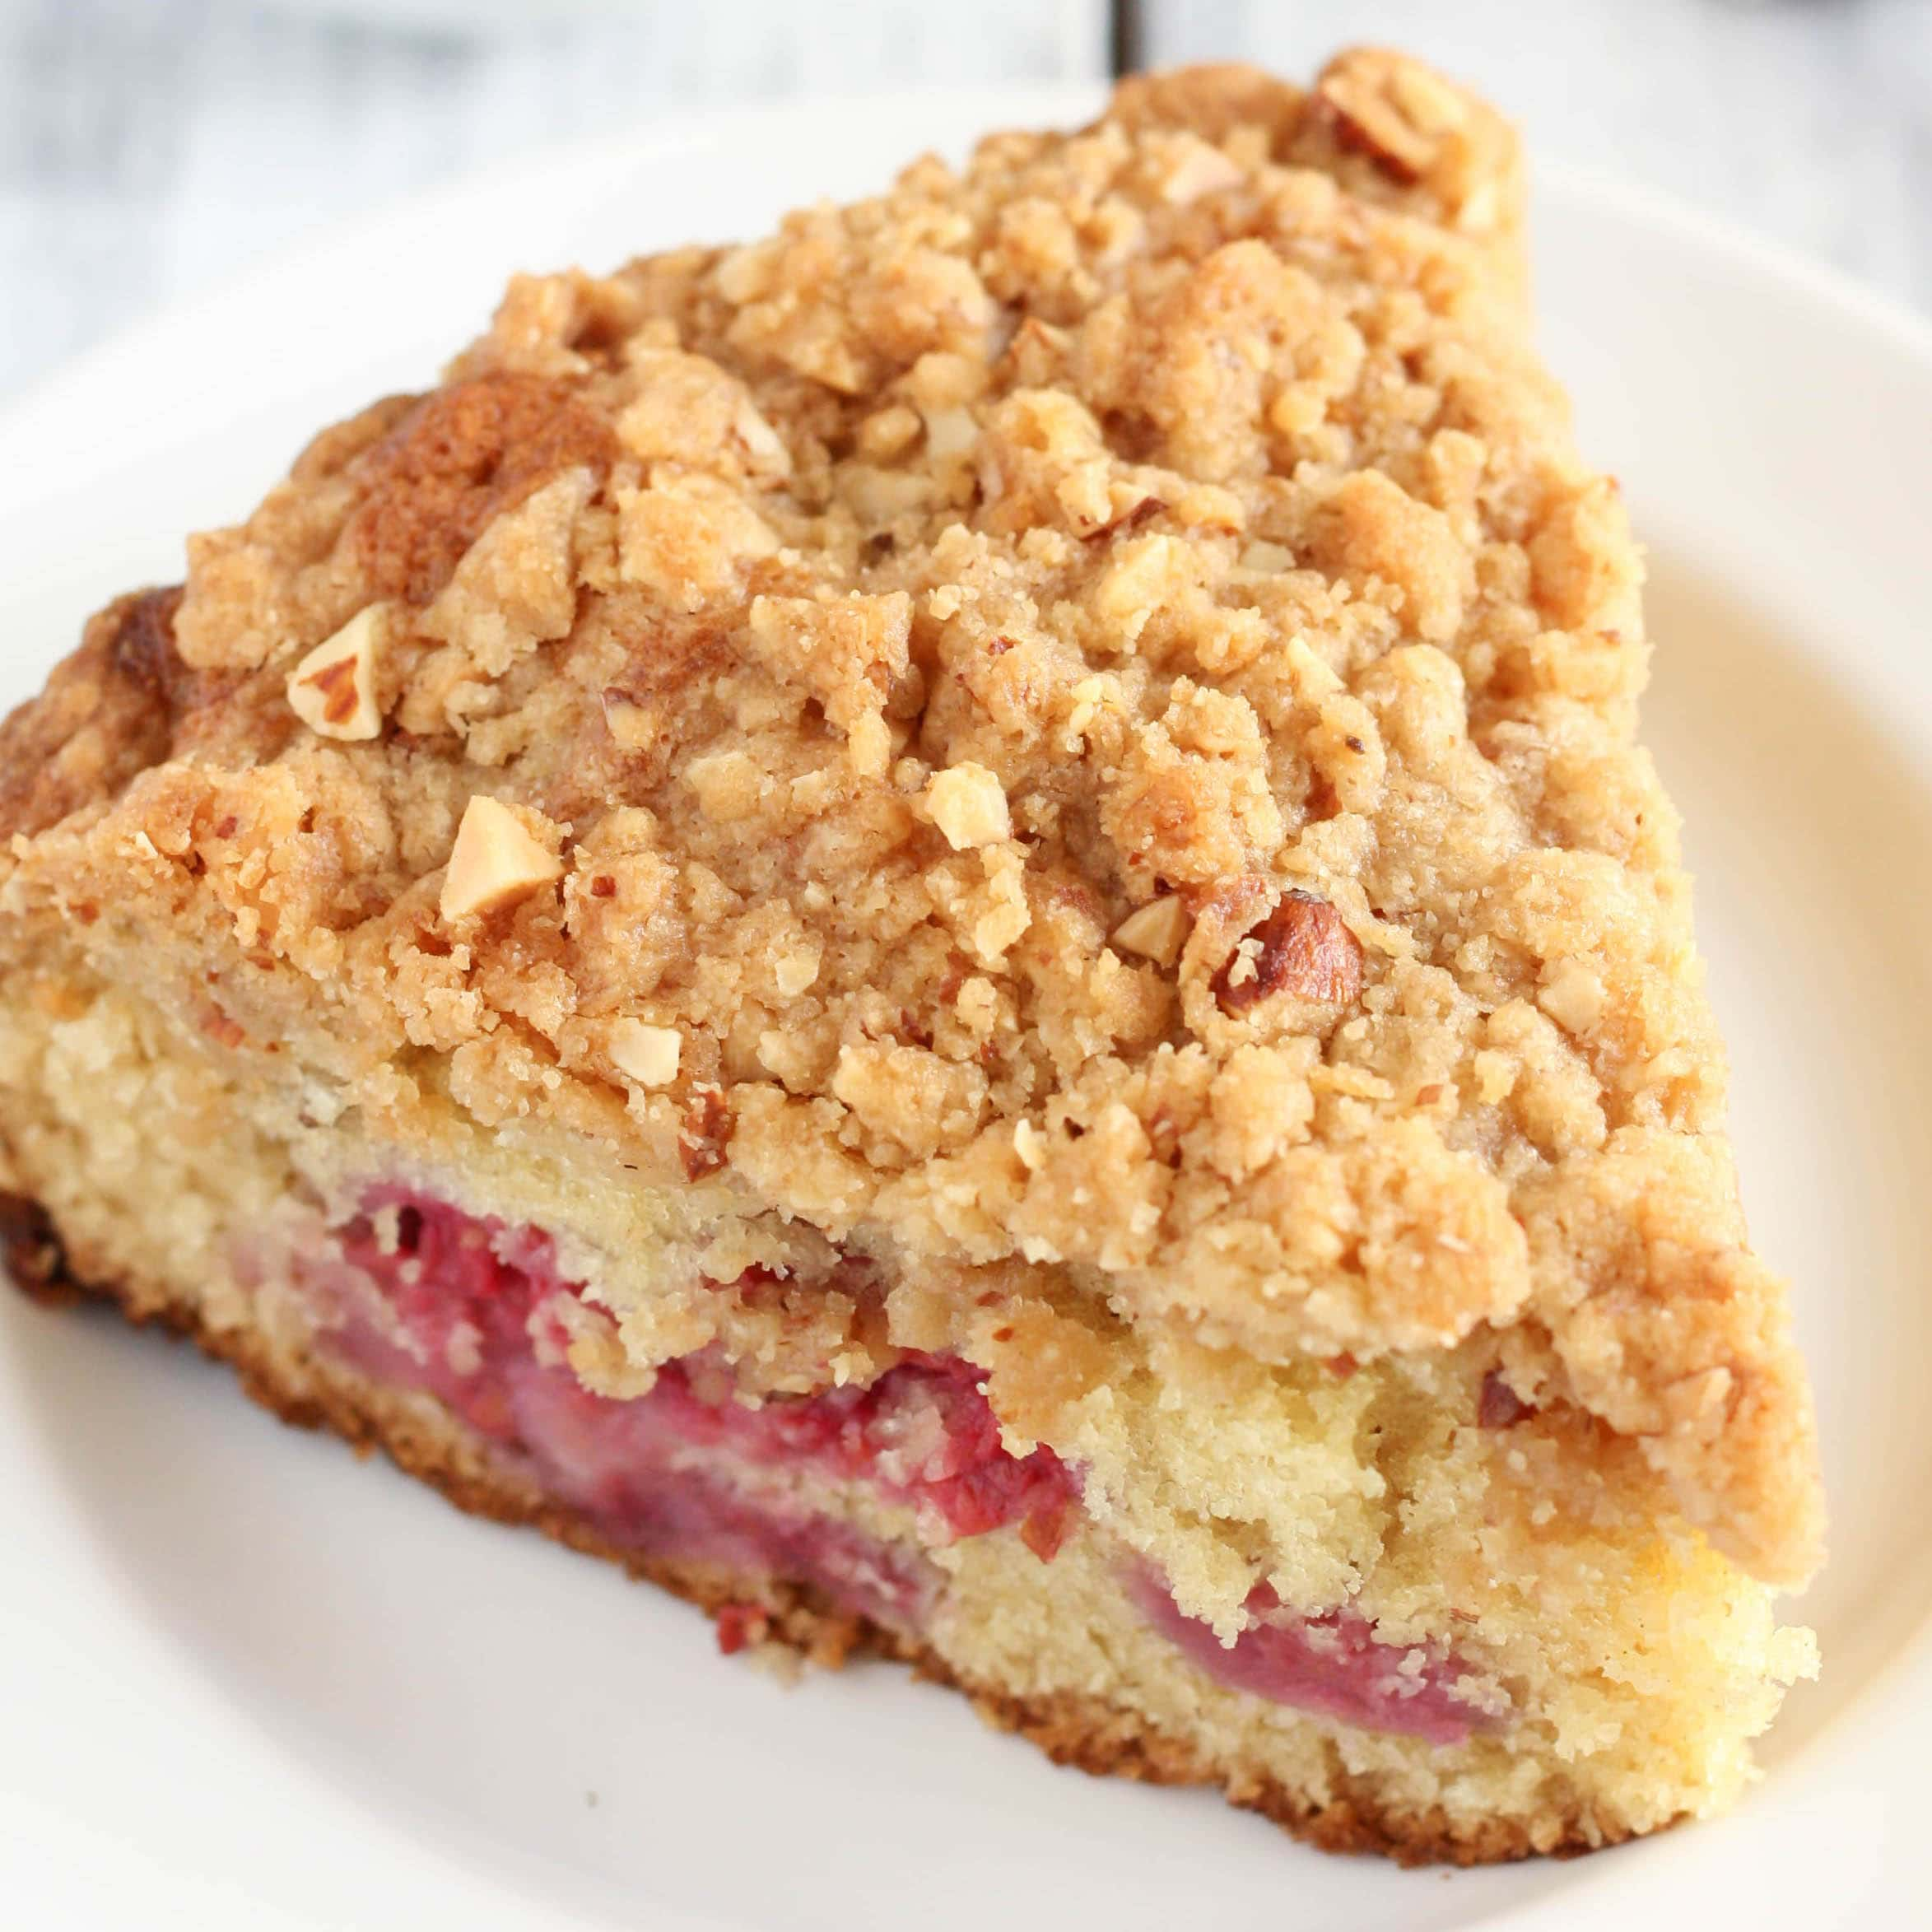 Raspberry Almond Crumb Cake - Live Well Bake Often